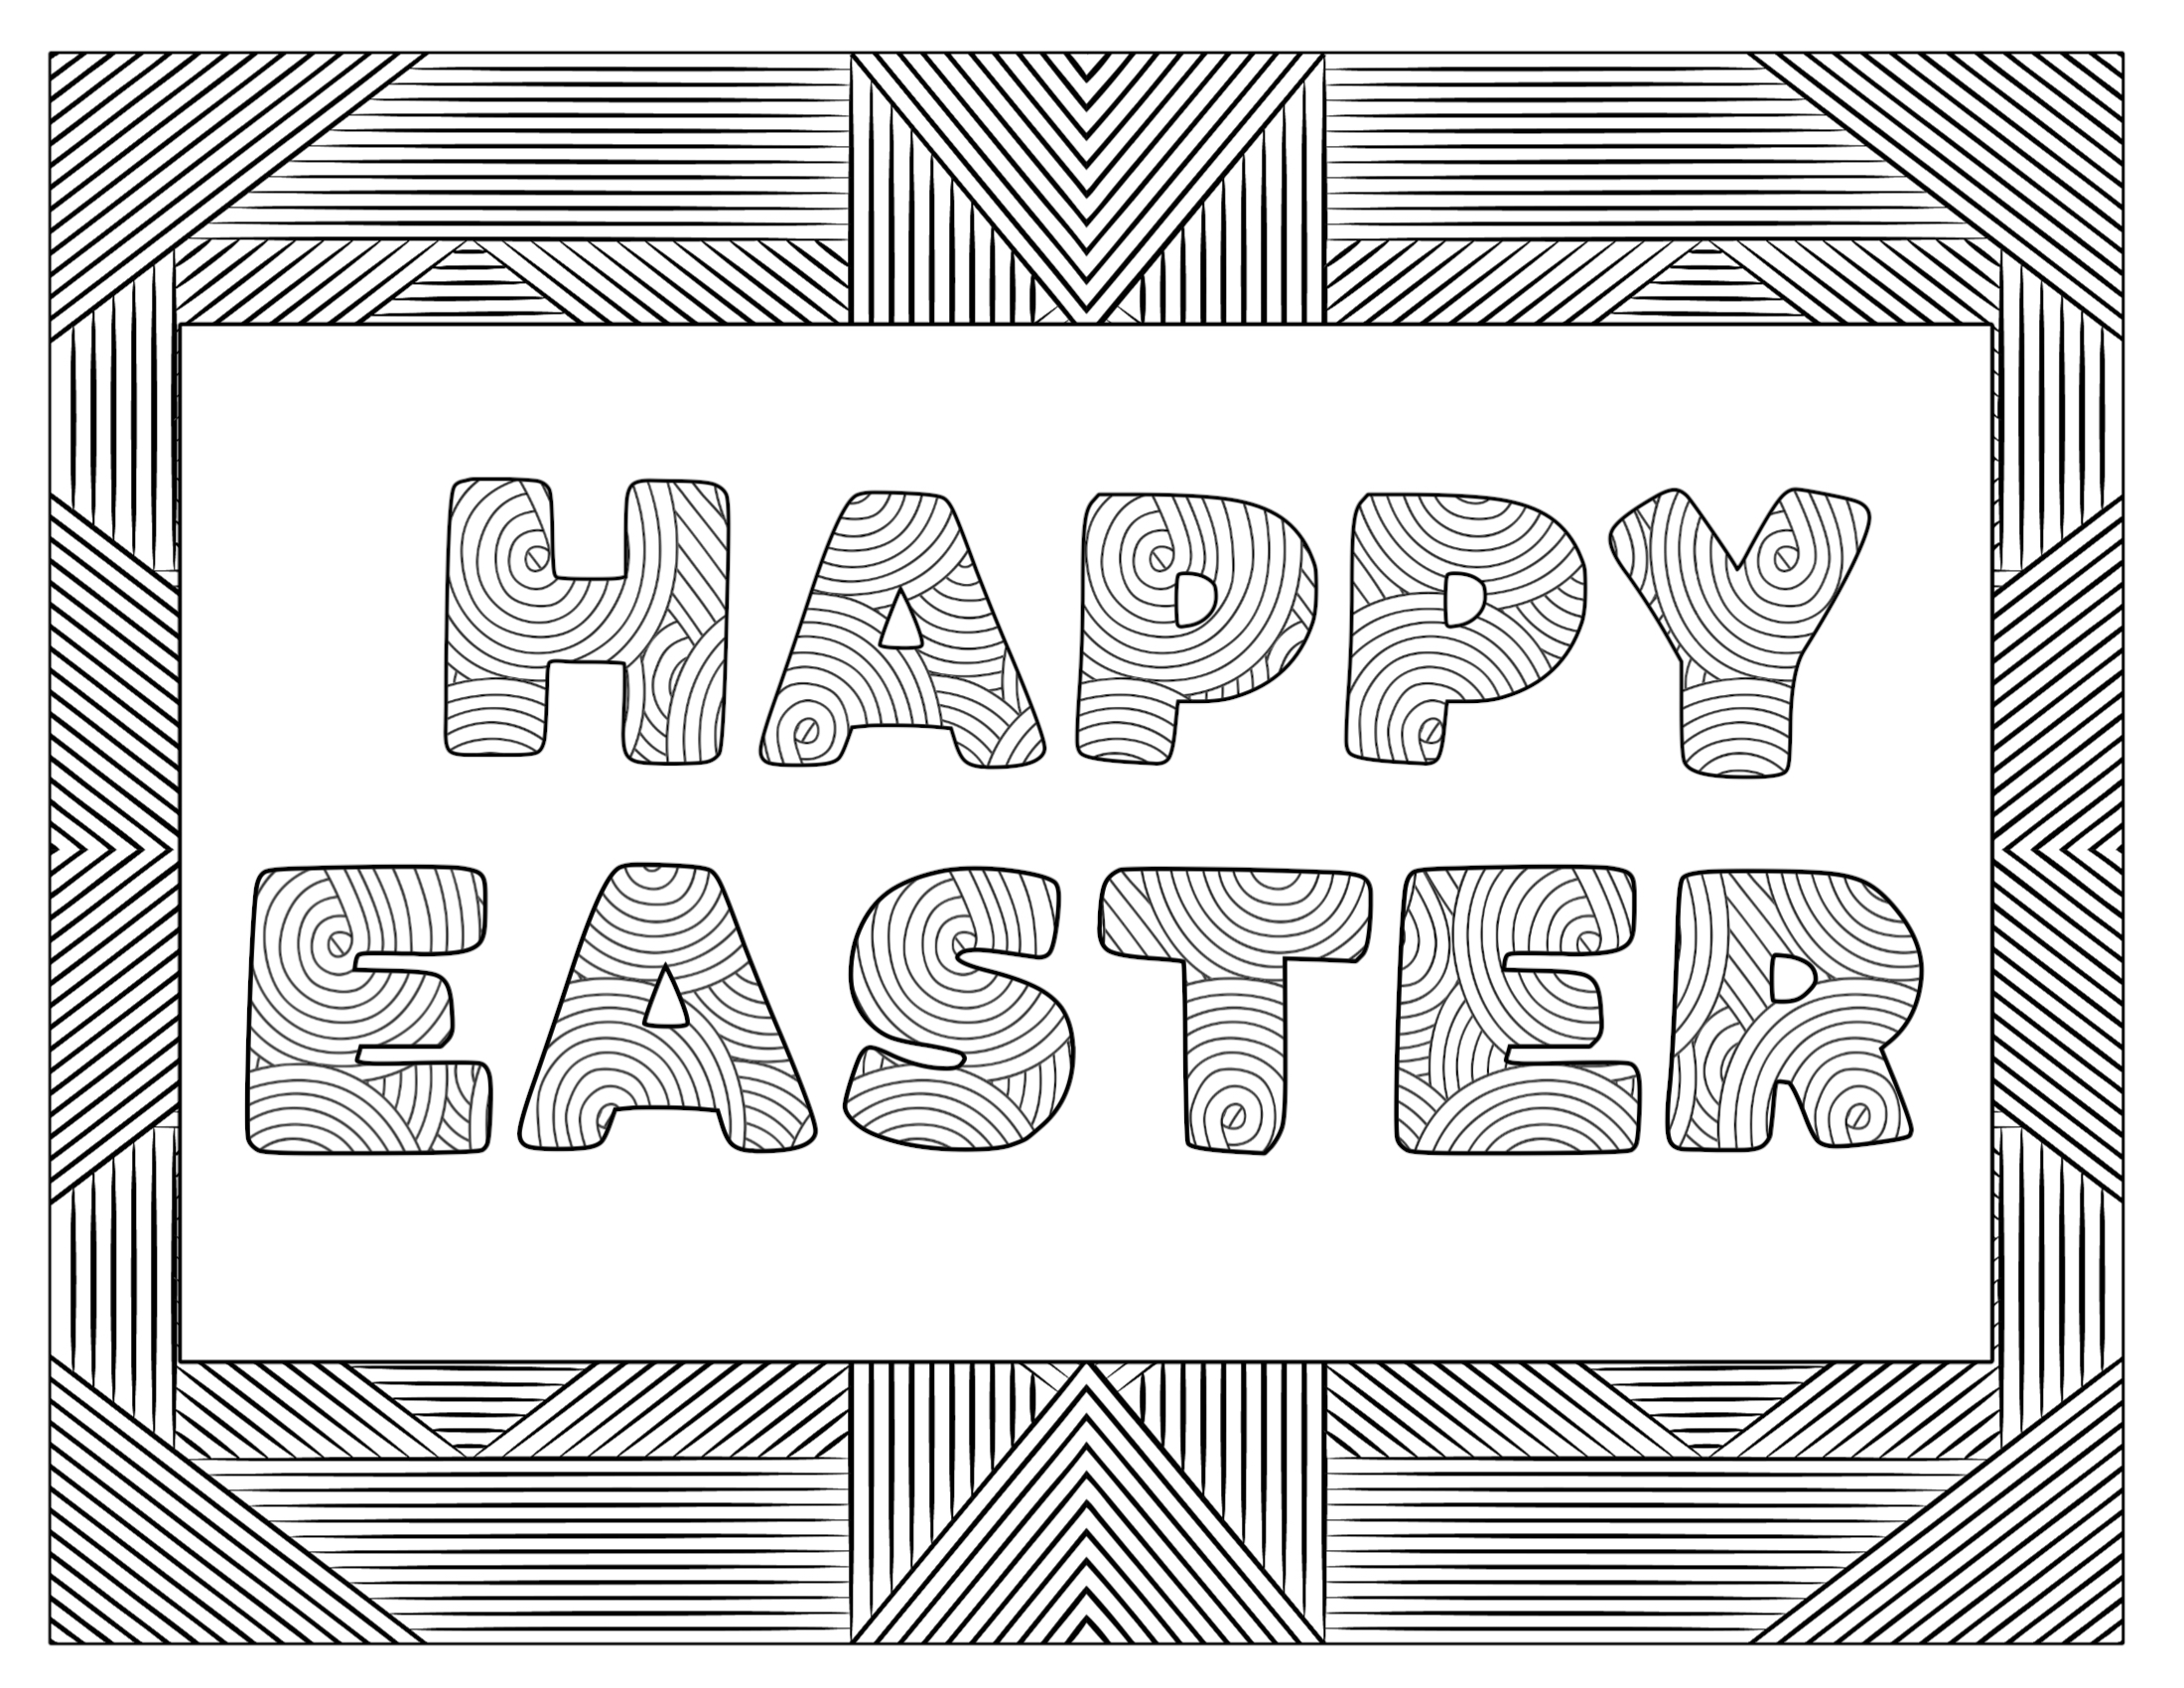 resurrection coloring pages free | Easter Coloring Sheet | Sunday ... | 1700x2200